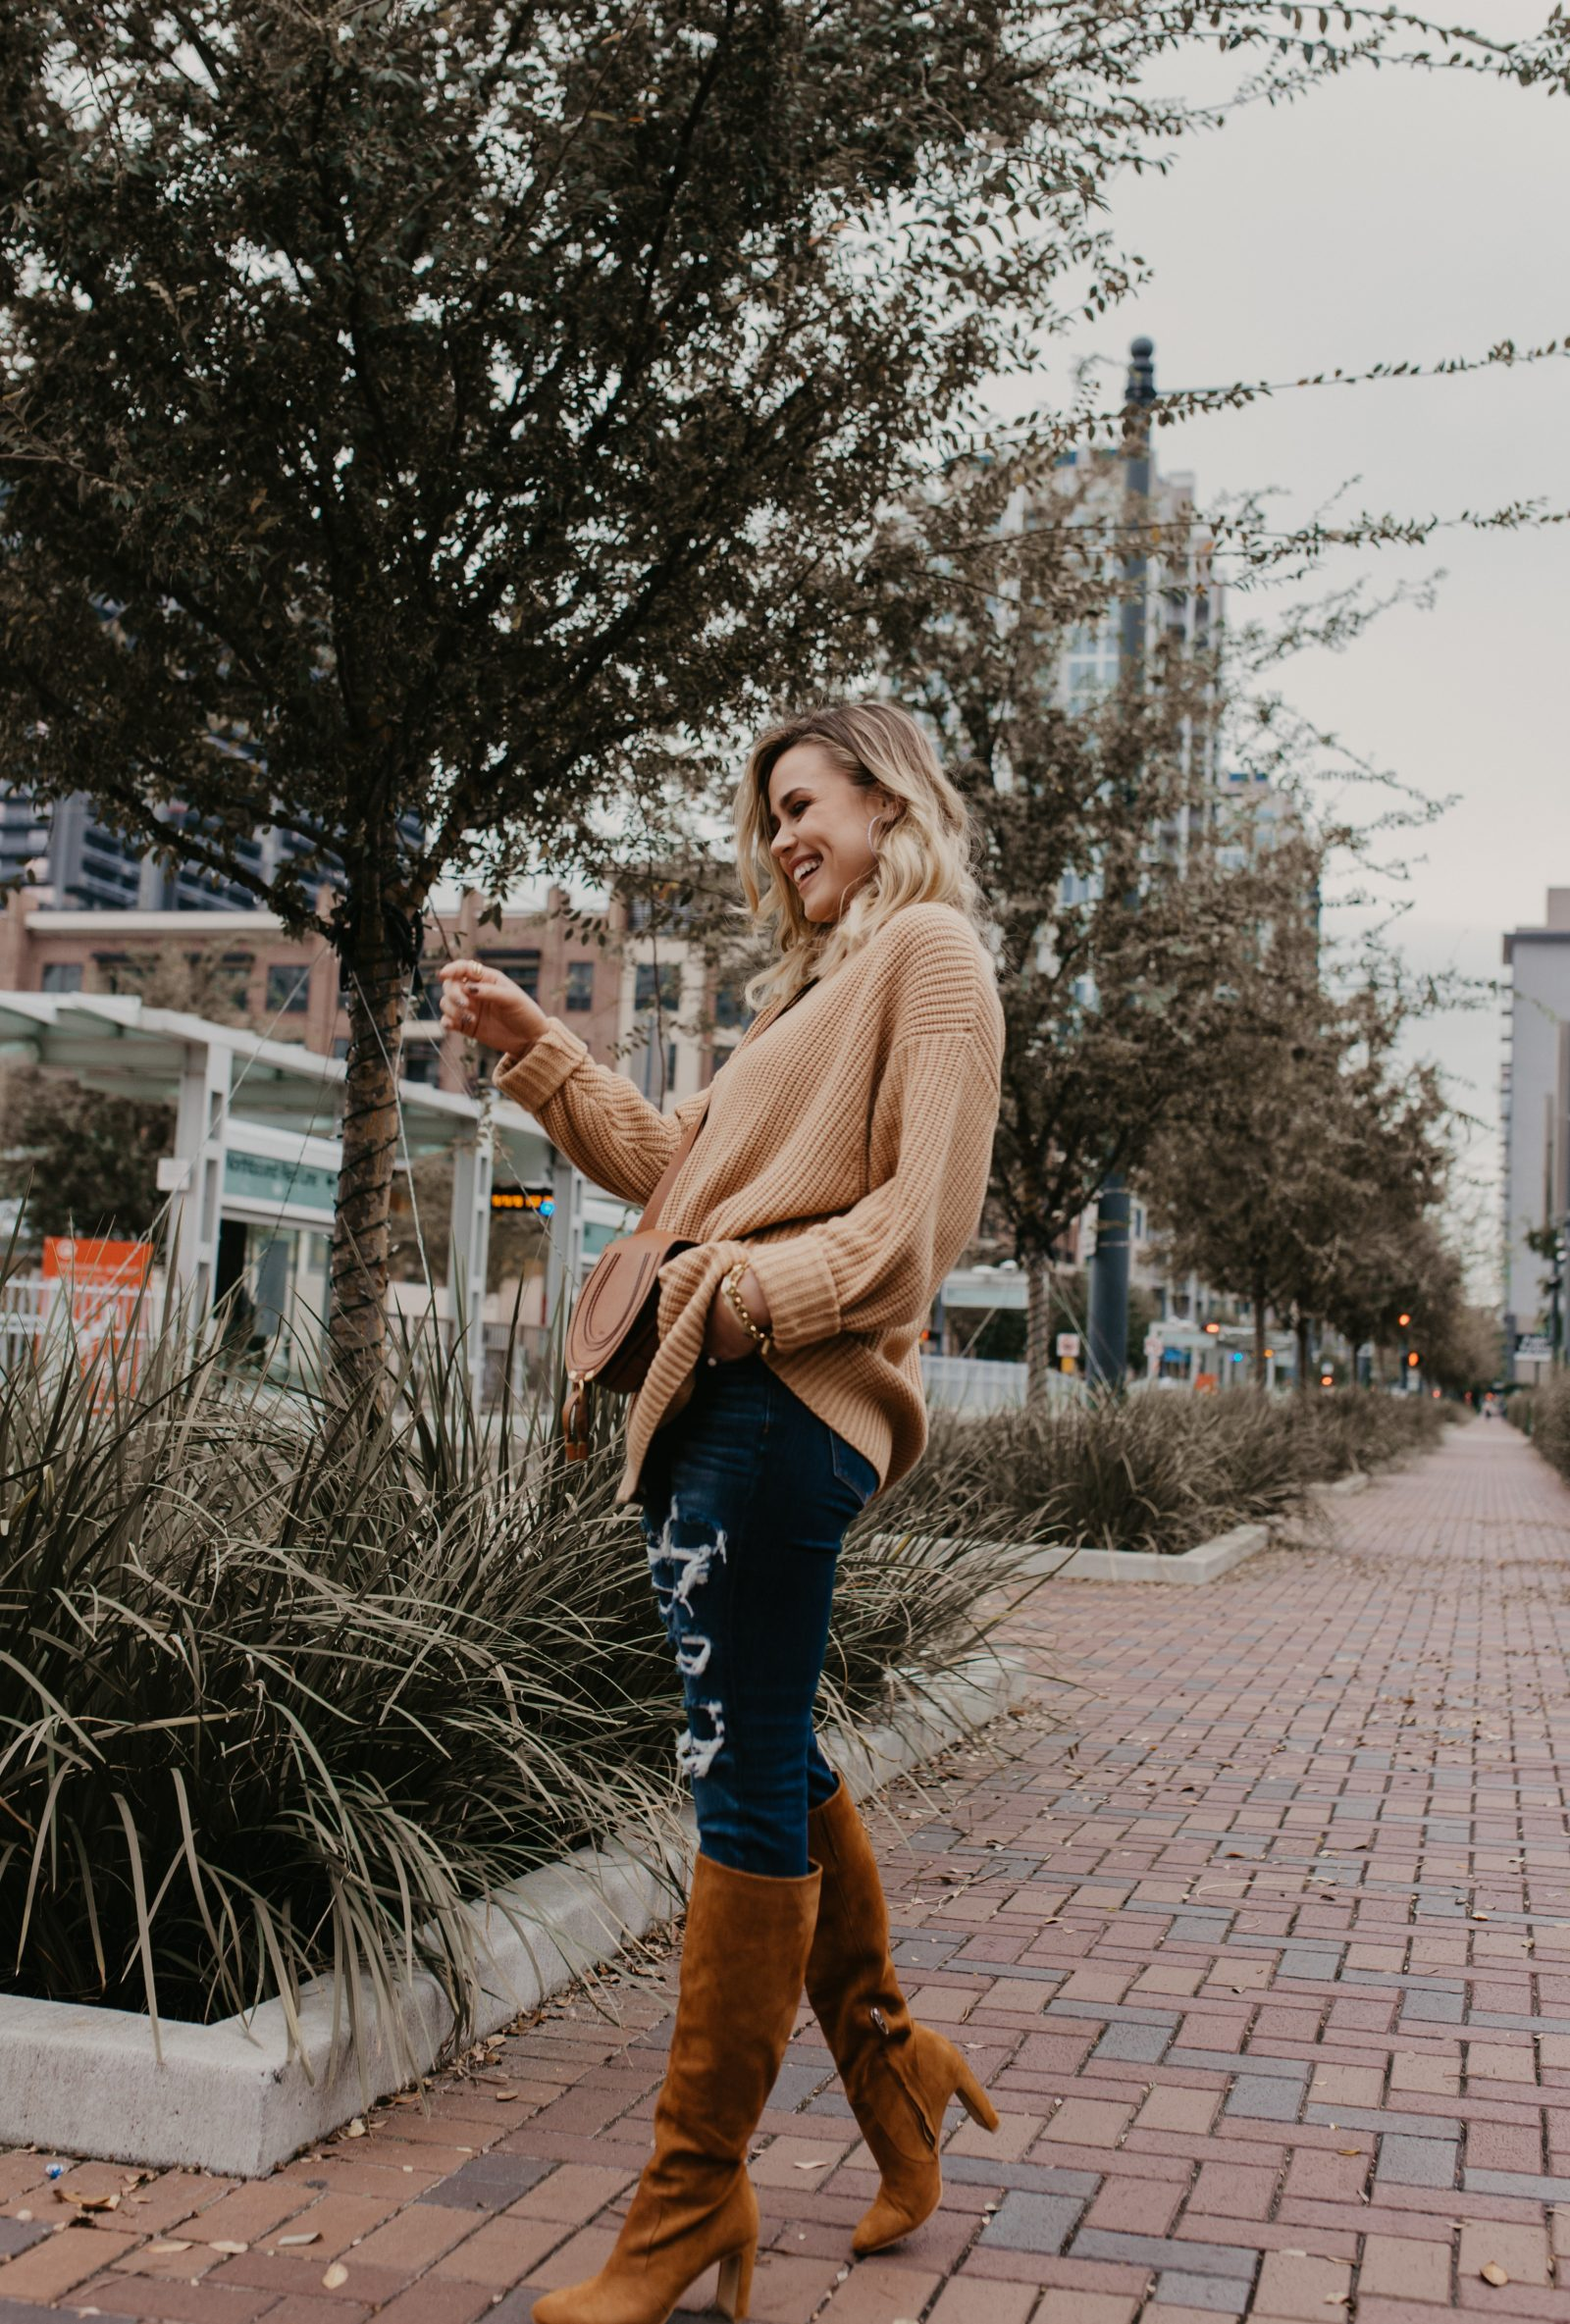 Houston Fashion blogger Uptown with Elly Brown wears a cozy knit sweater with jeggings from American Eagle